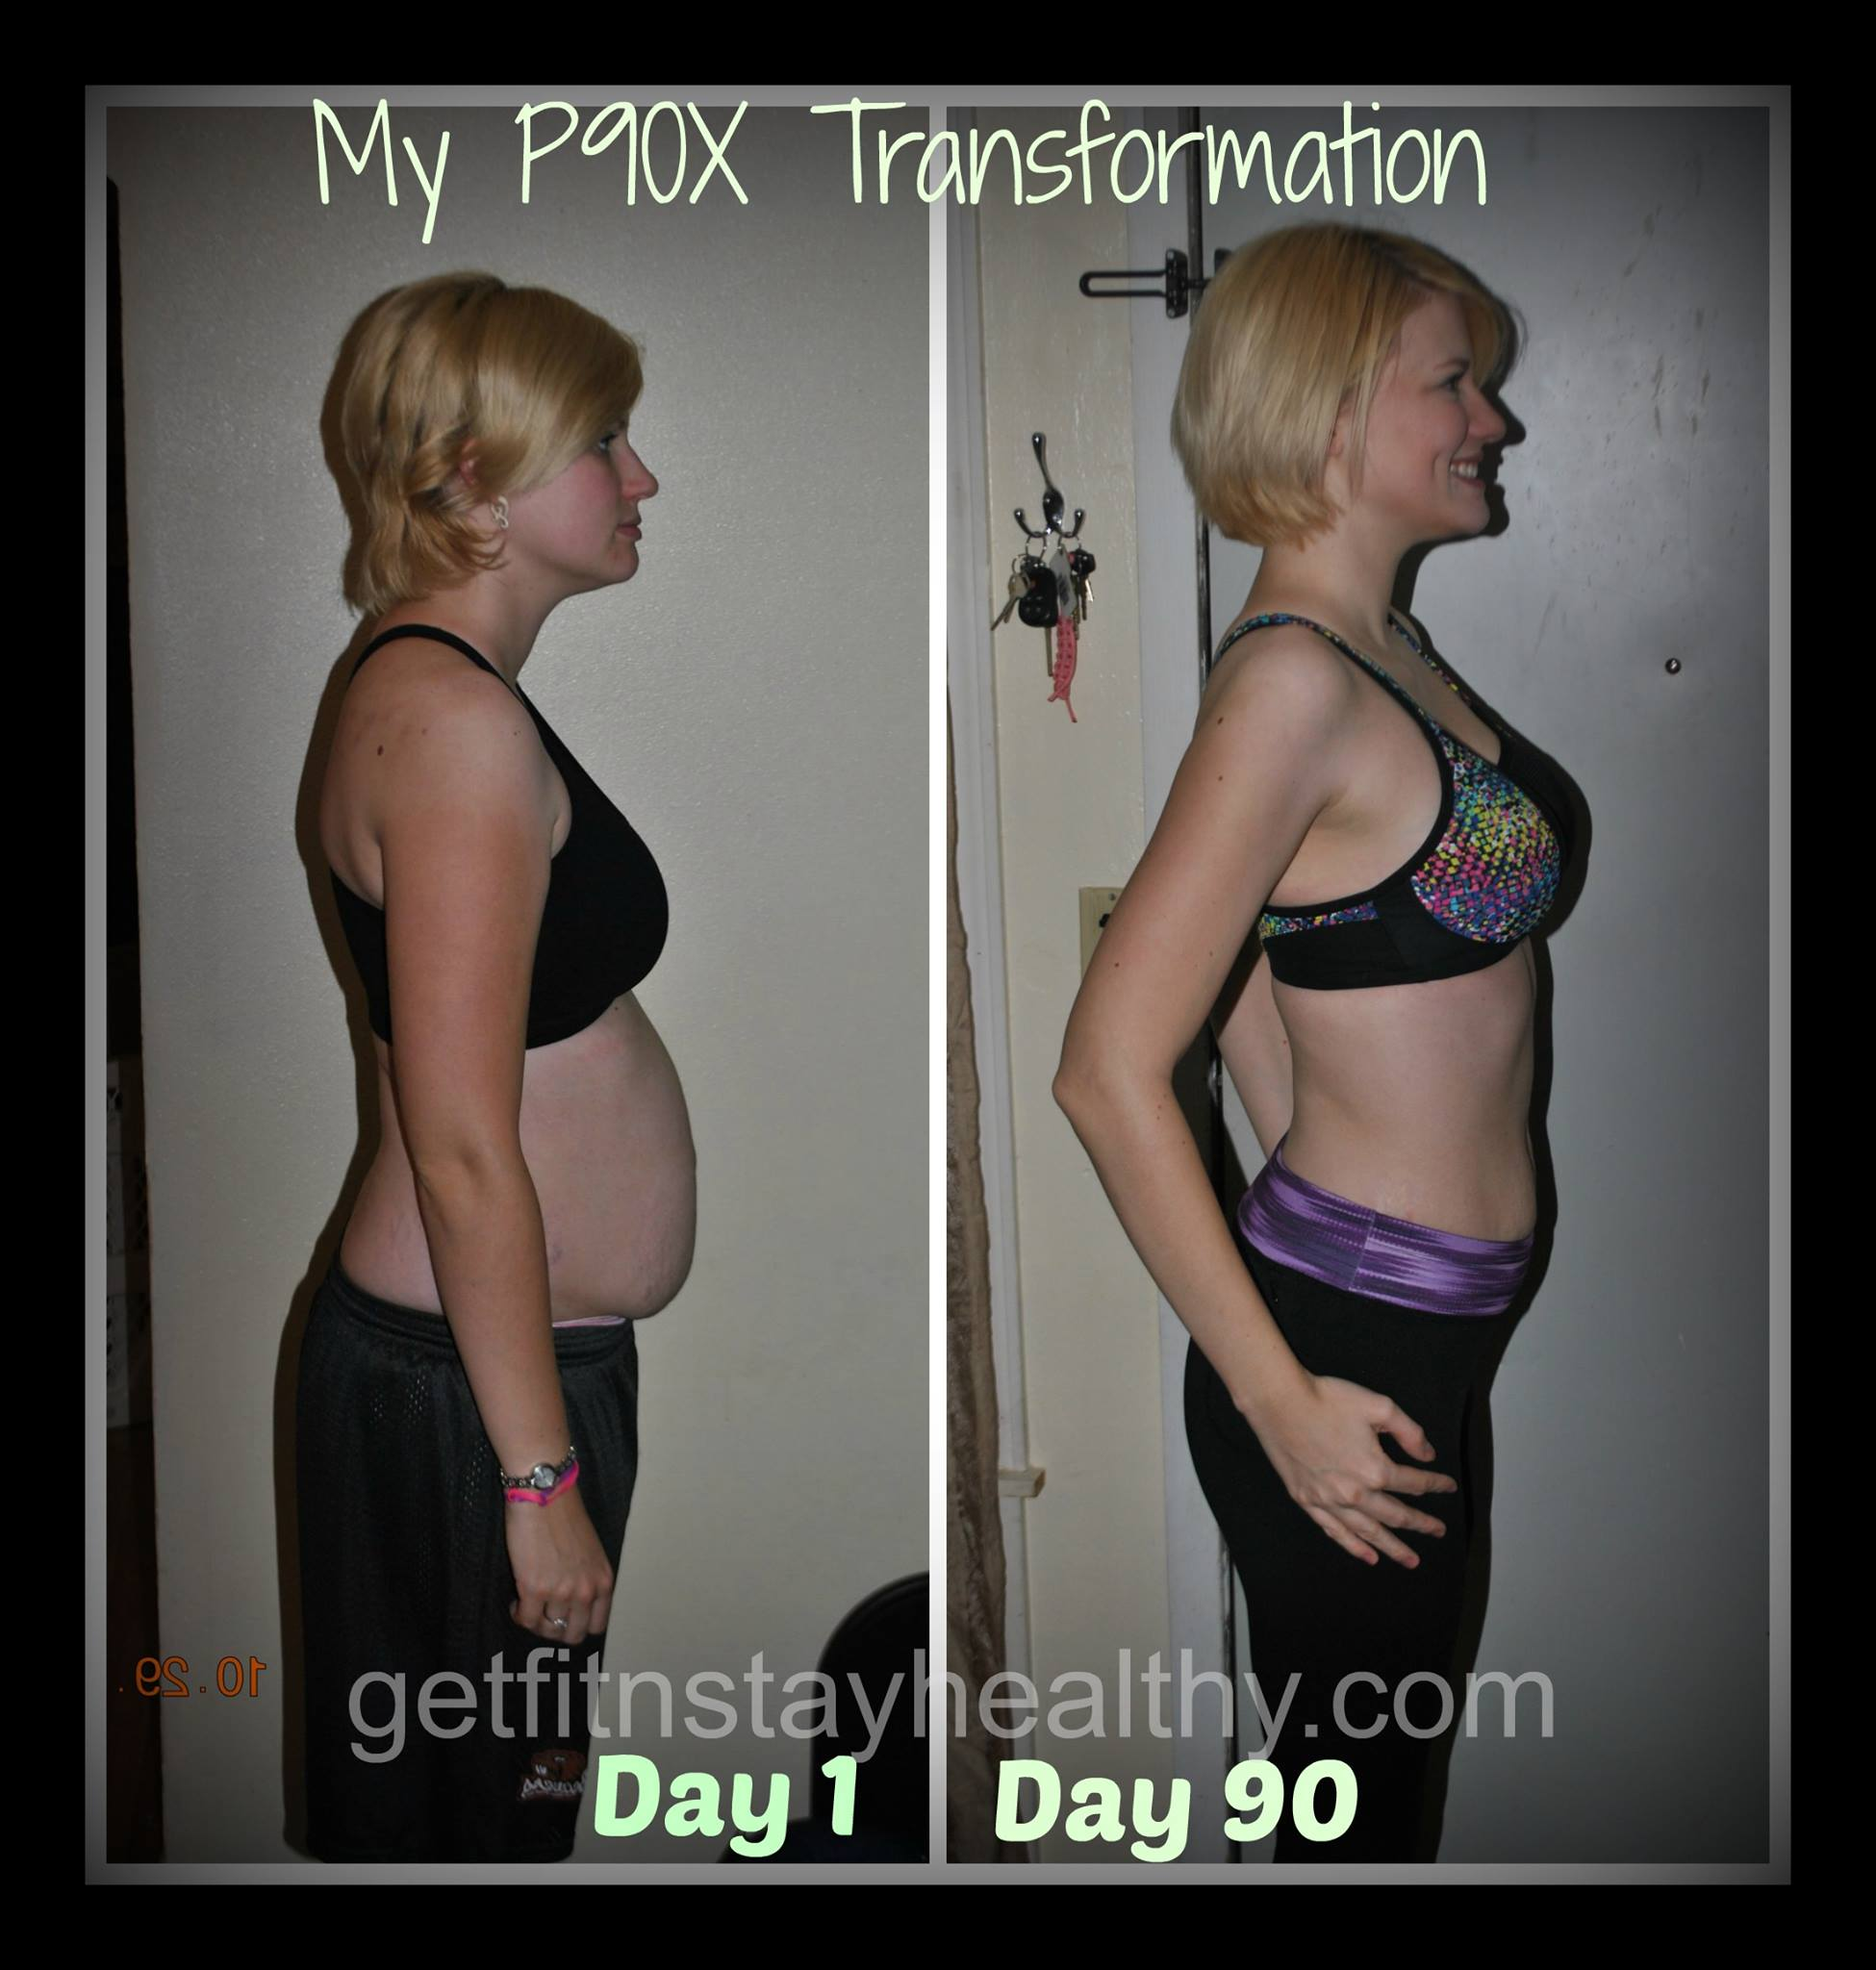 P90X Female Pictures